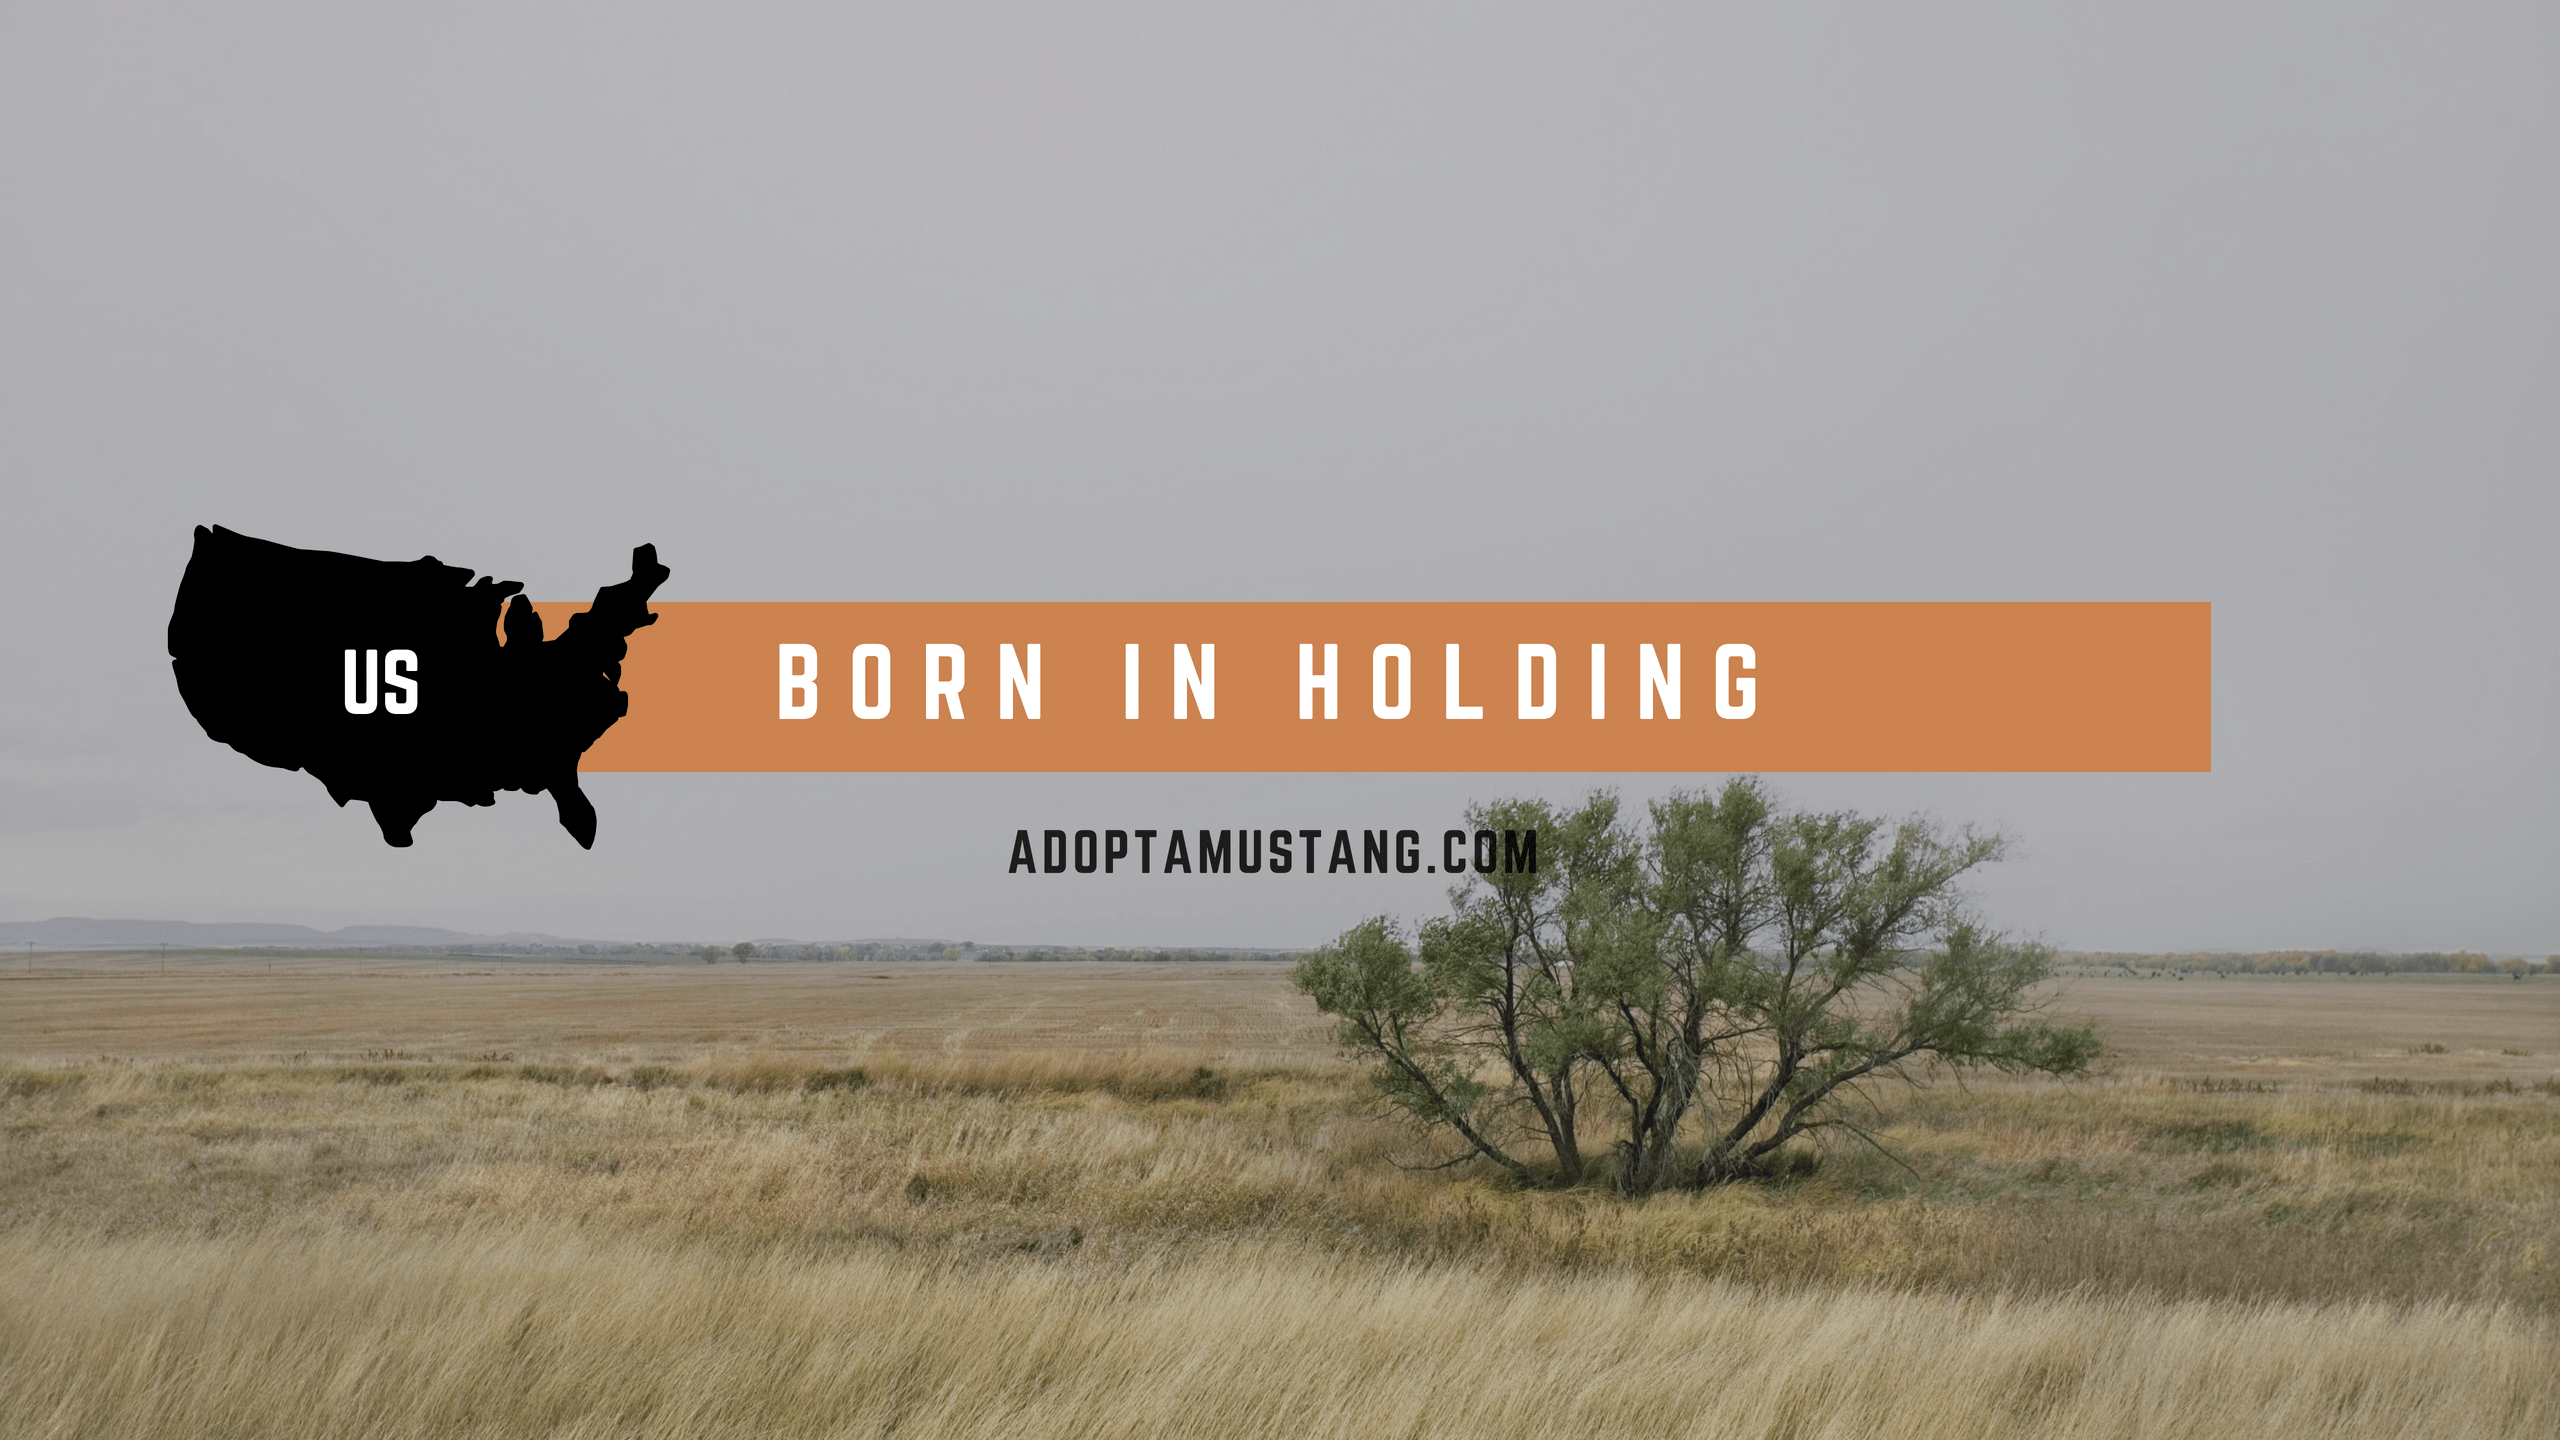 Born in Holding